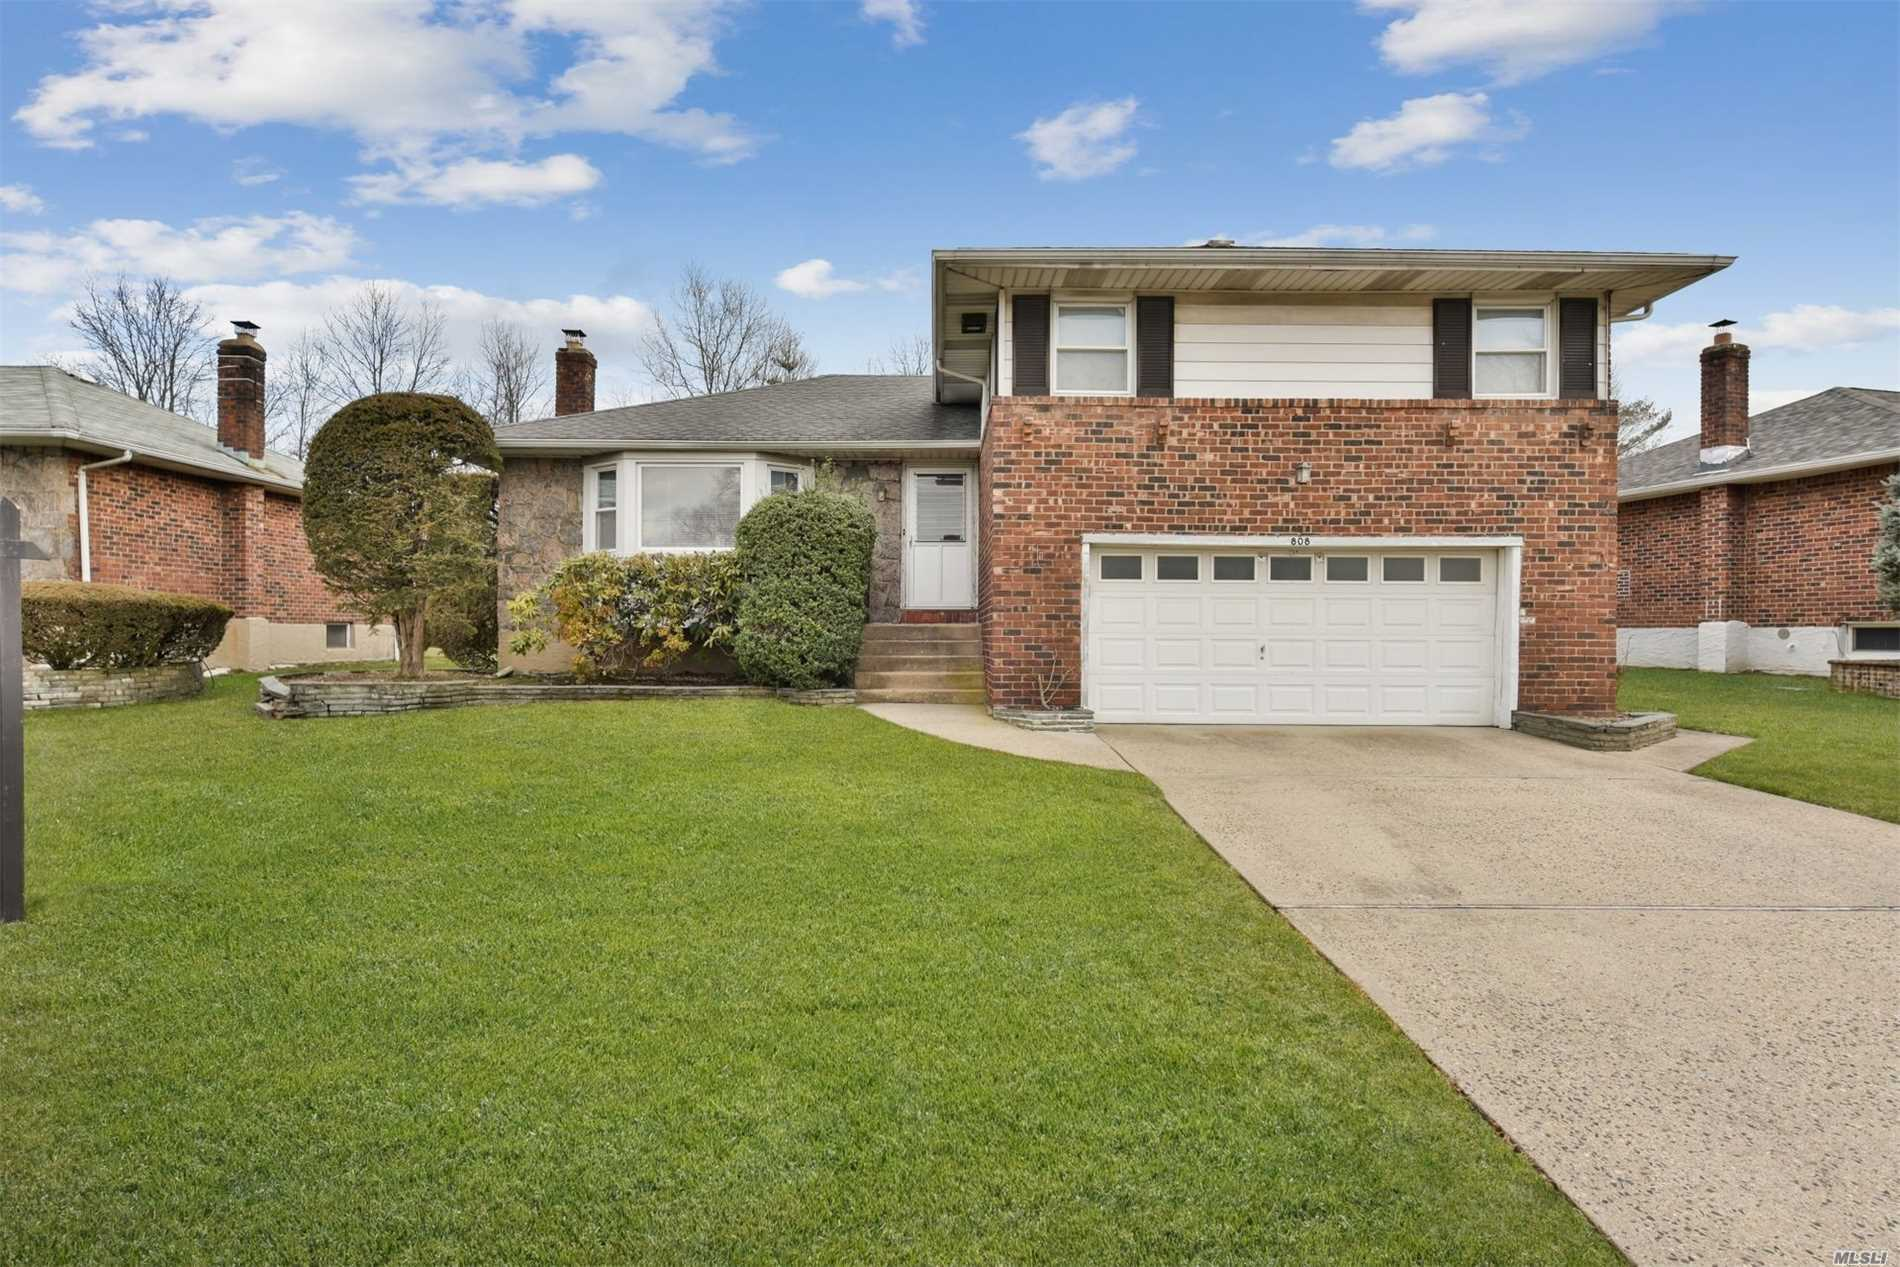 Must See This Lovely, Brick Split In Prime Salisbury Estates, Featuring 3 Spacious Bedrooms, 2.5 Baths, Large Living Room, Formal Dining Room, Great Eat-In-Kitchen, Whole House Has Been Freshly Painted, Hardwood Floors throughout, great Den With New Floors And Sliders To A Private Backyard, 2-Car Attached Garage. Low Taxes!!